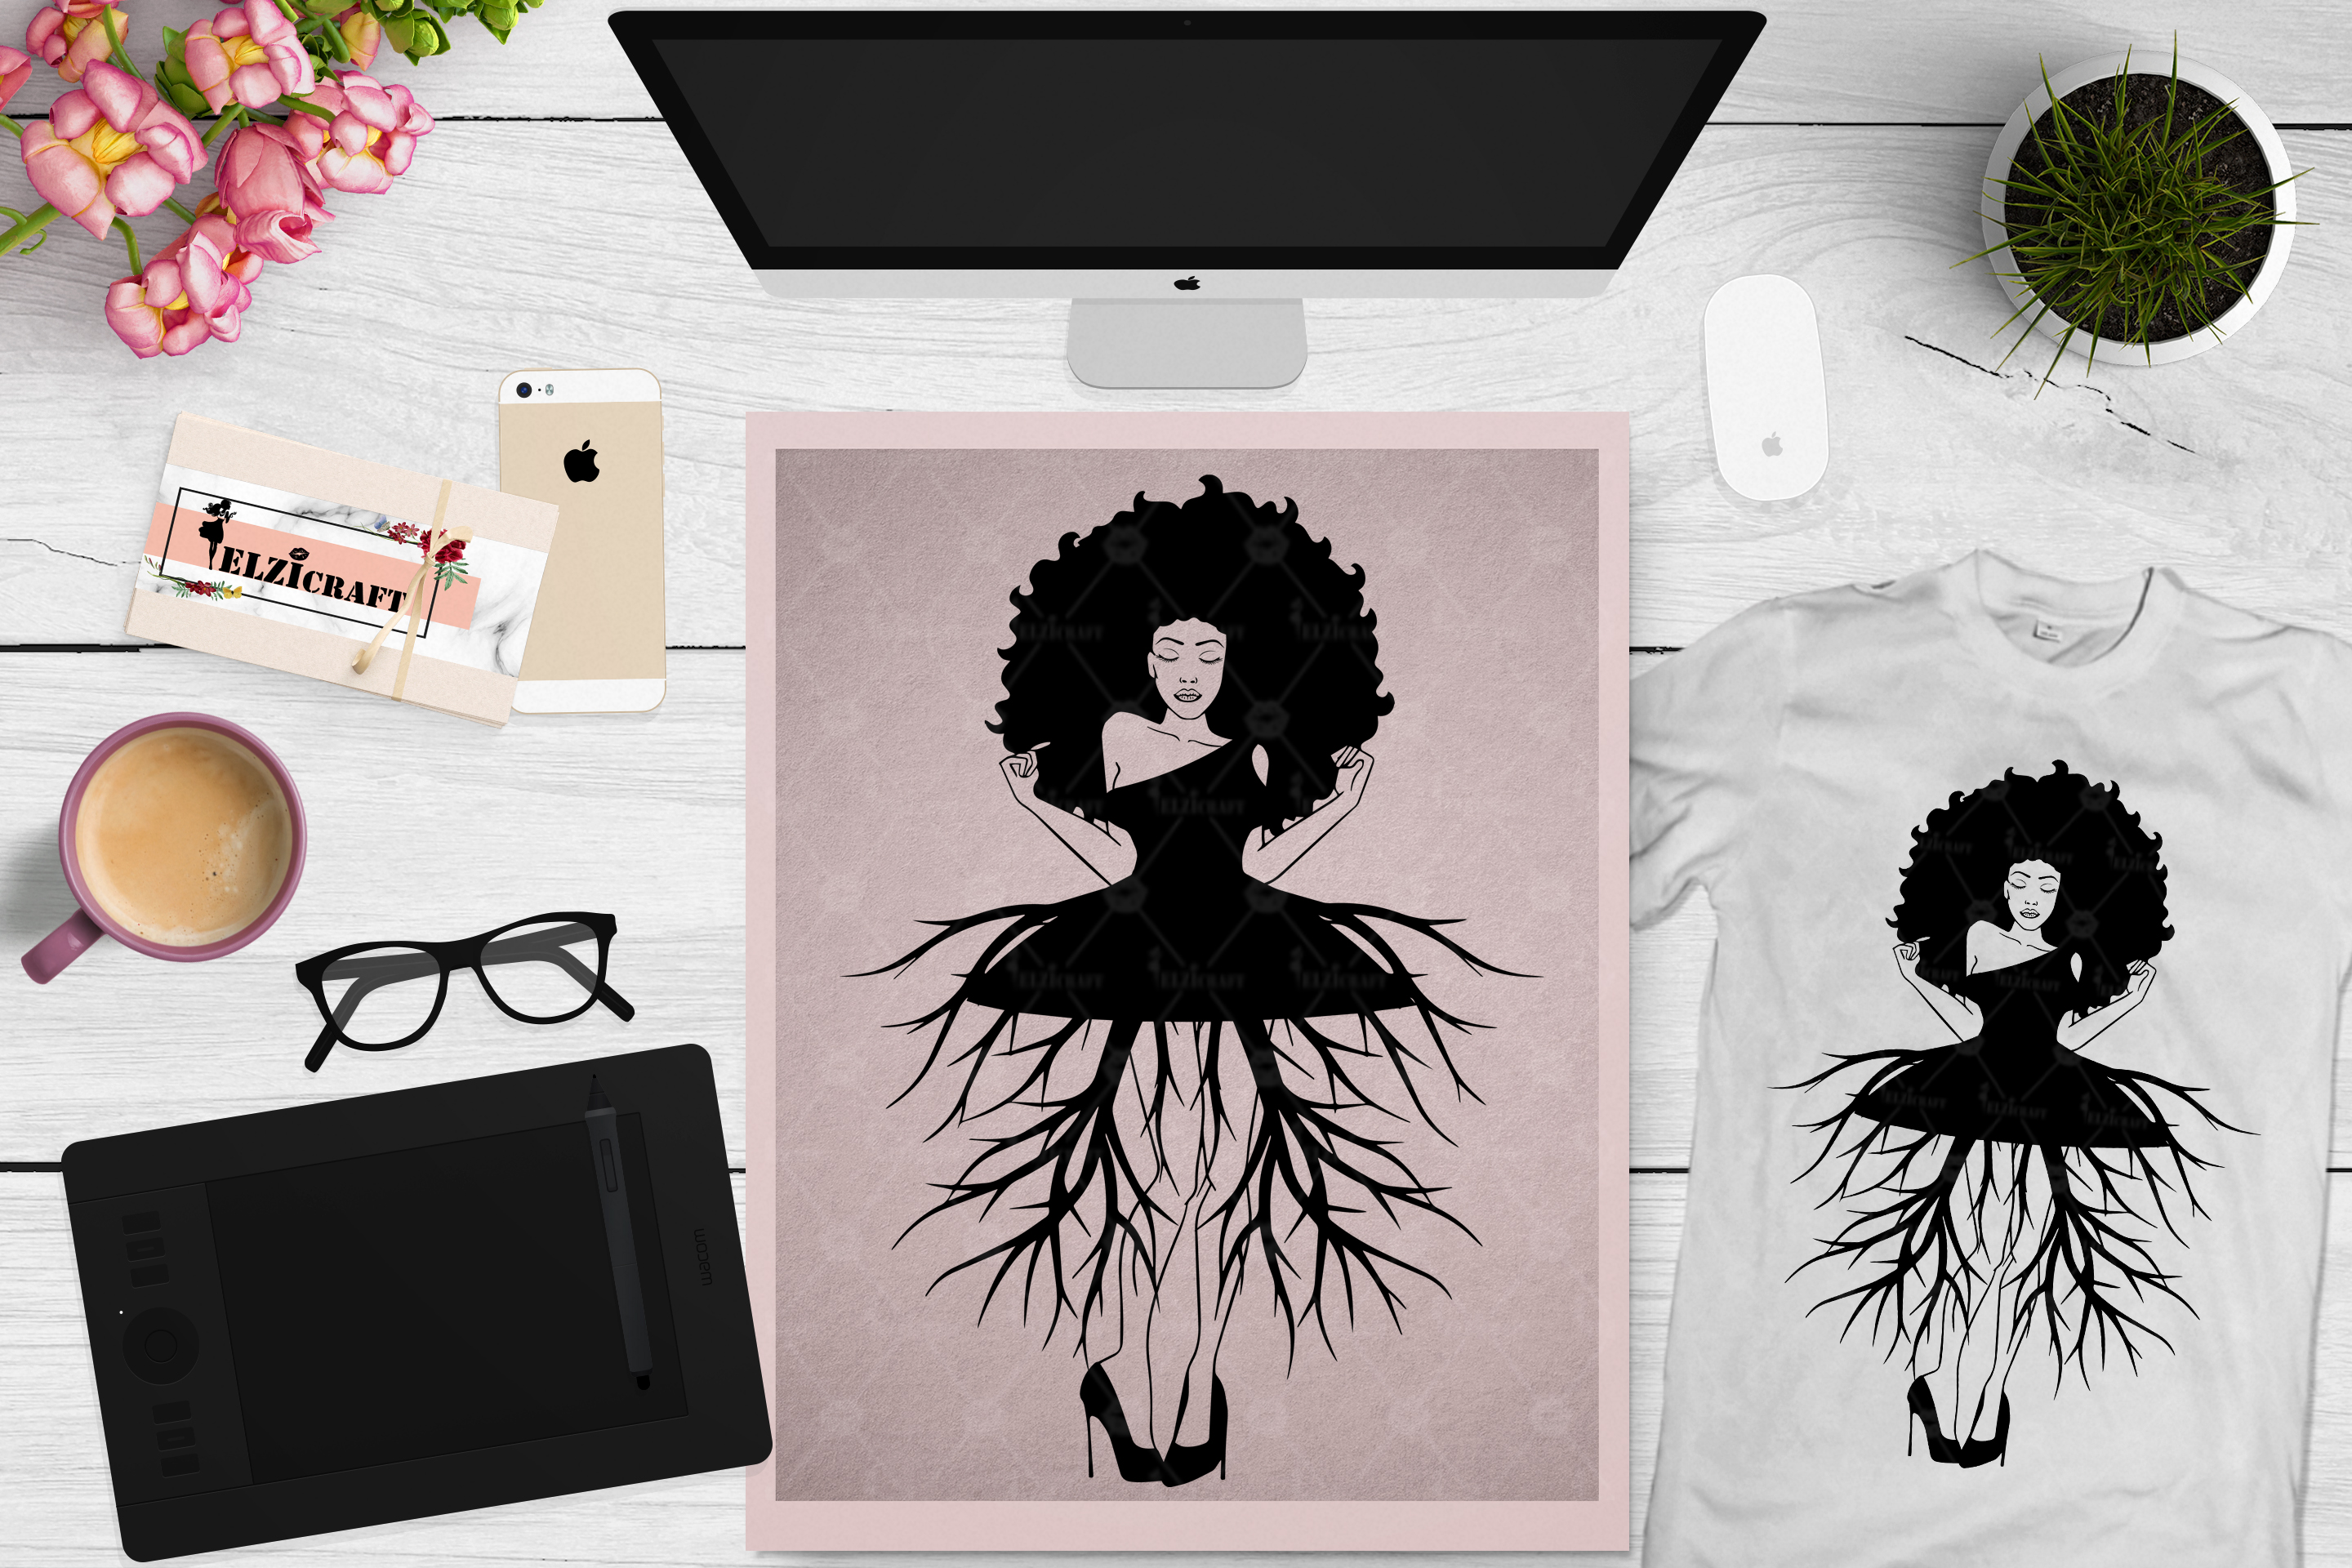 Download Free Afro Woman Roots Skirt Silhouette Graphic By Elzicraft for Cricut Explore, Silhouette and other cutting machines.